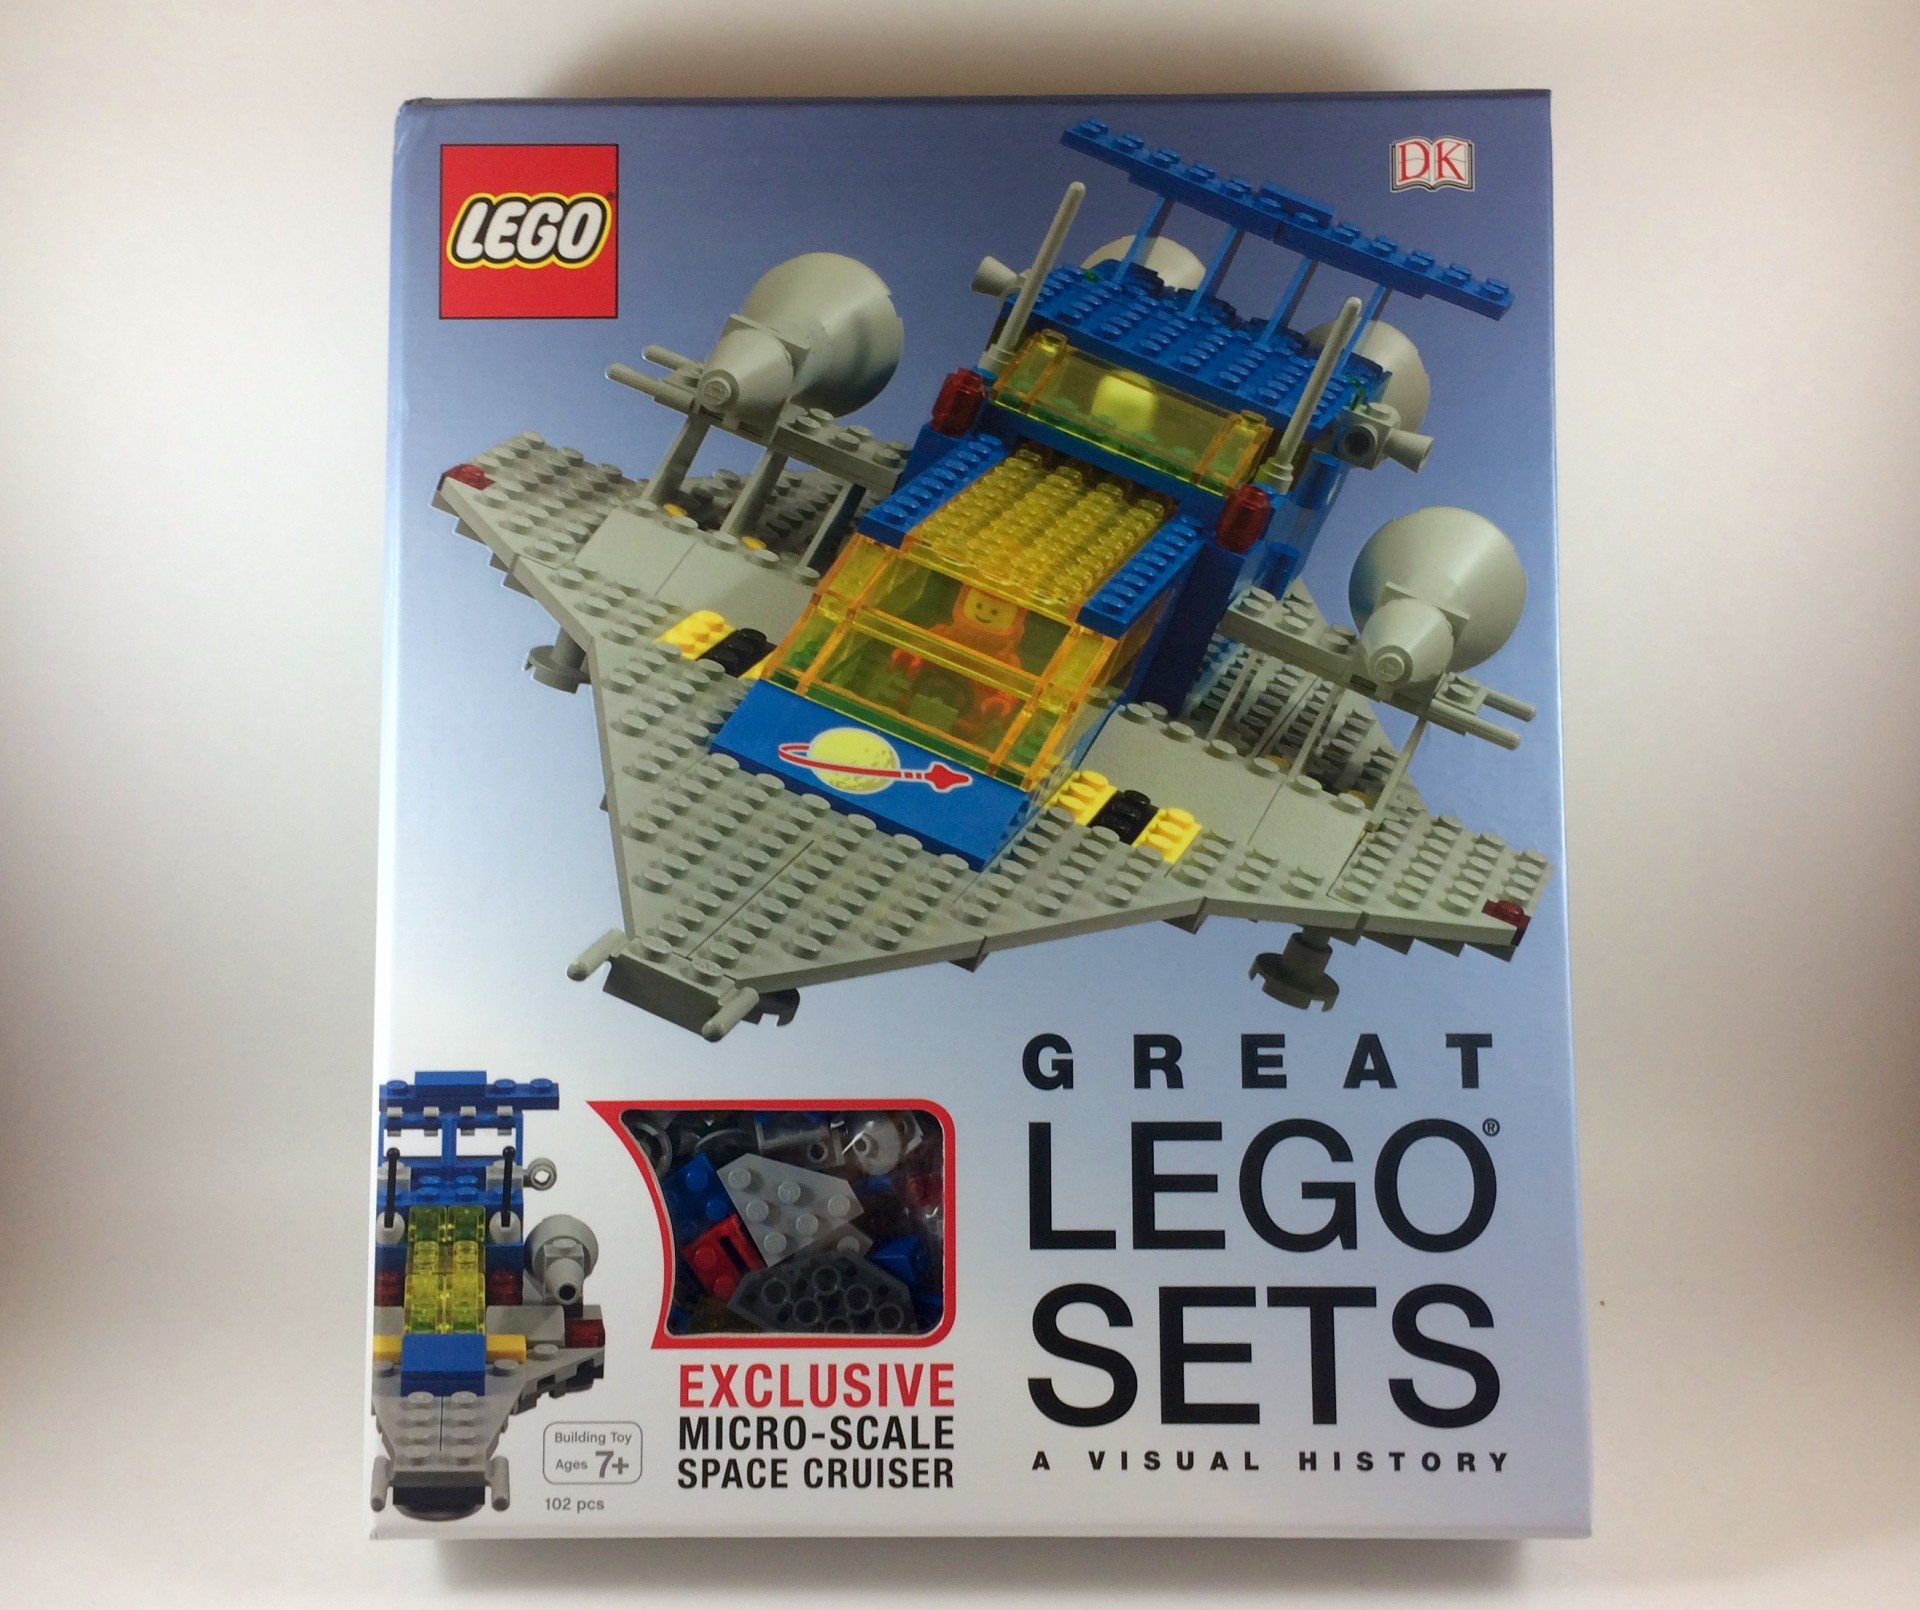 DK Publishing's Great LEGO Sets: A Visual History